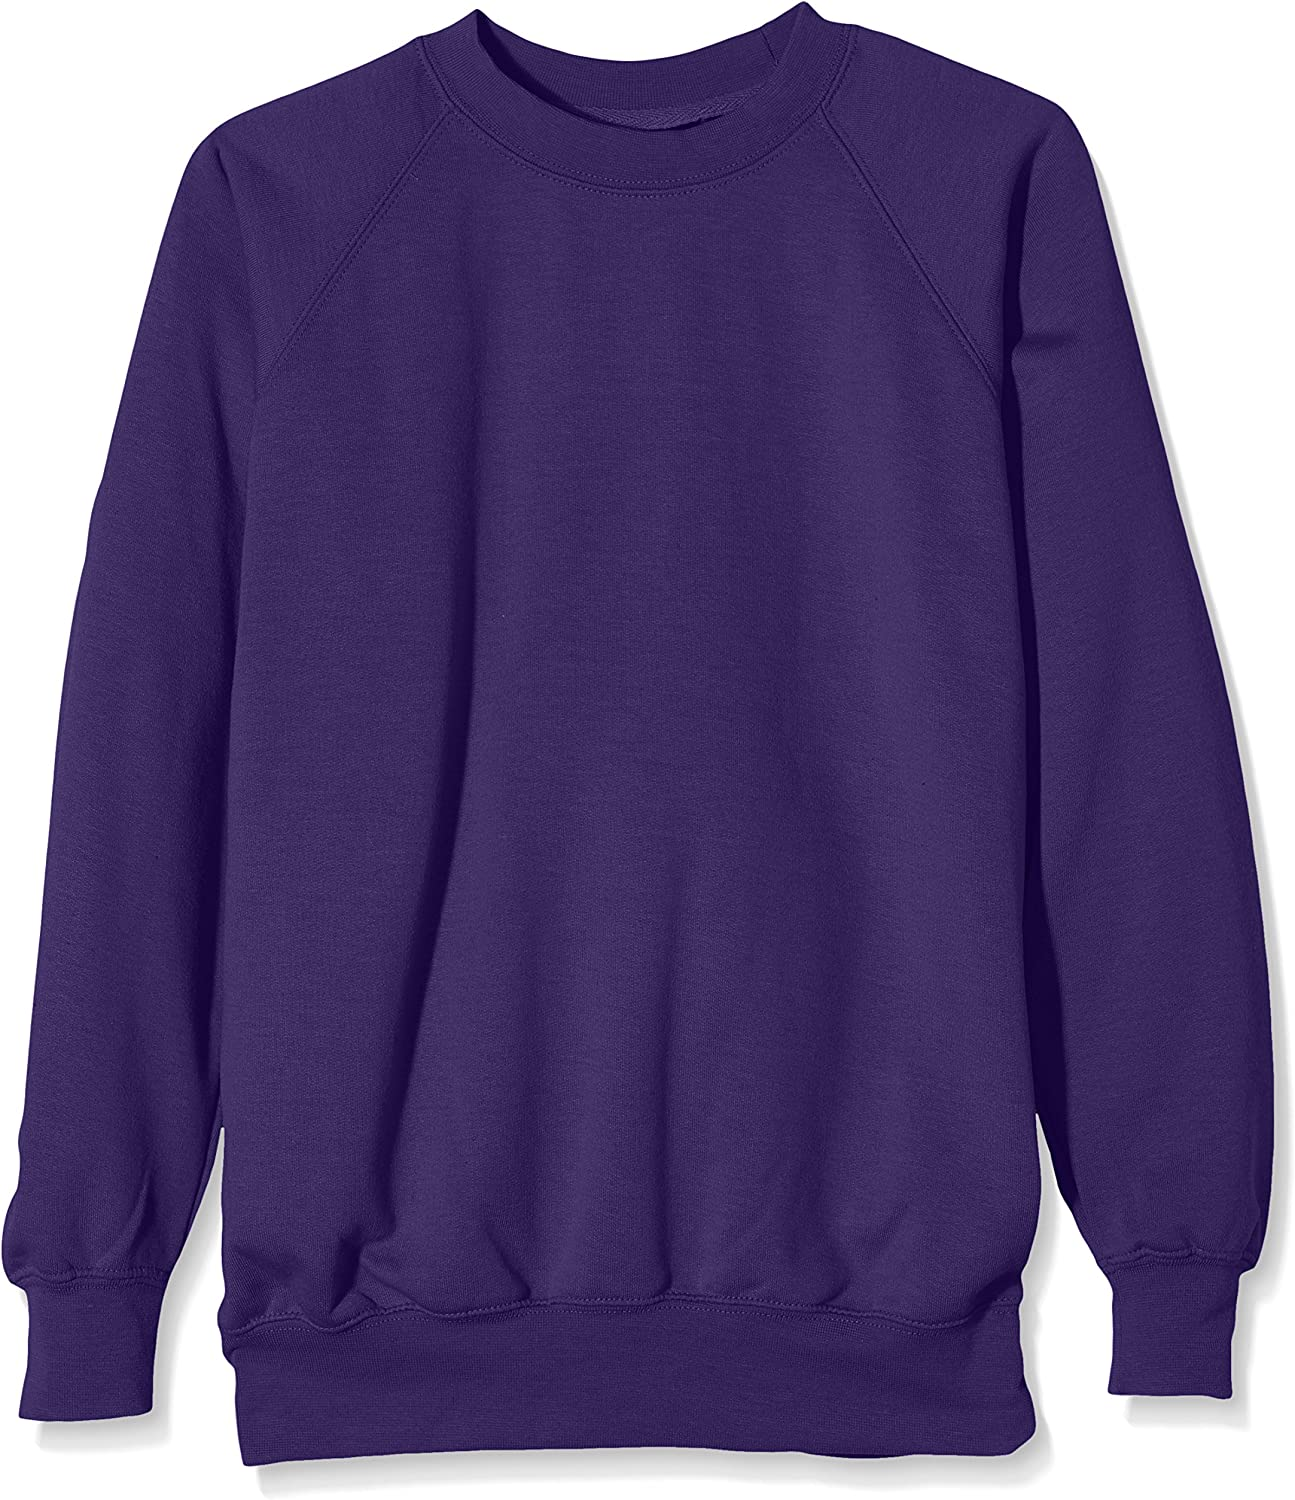 Trutex Limited Unisex 260G Crew Neck Sweatshirt